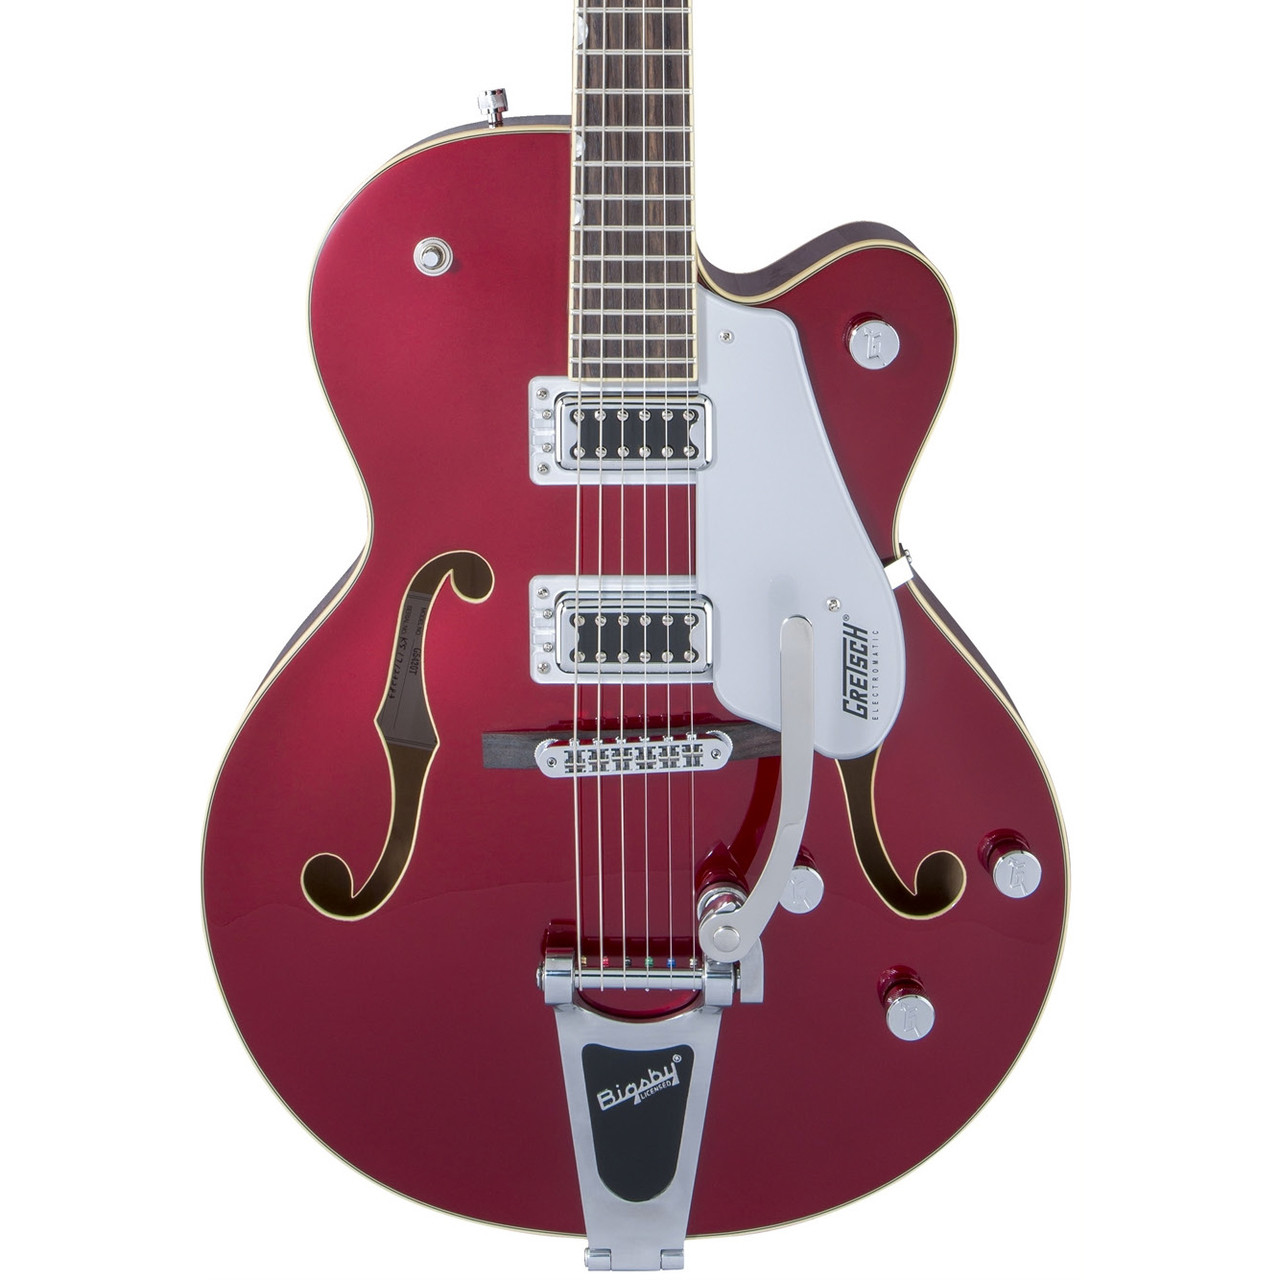 Gretsch Electromatic Hollow Body Great Installation Of Wiring Eftps Instructions G5420t Single Cut With Bigsby Candy Rh Creamcitymusic Com Bass